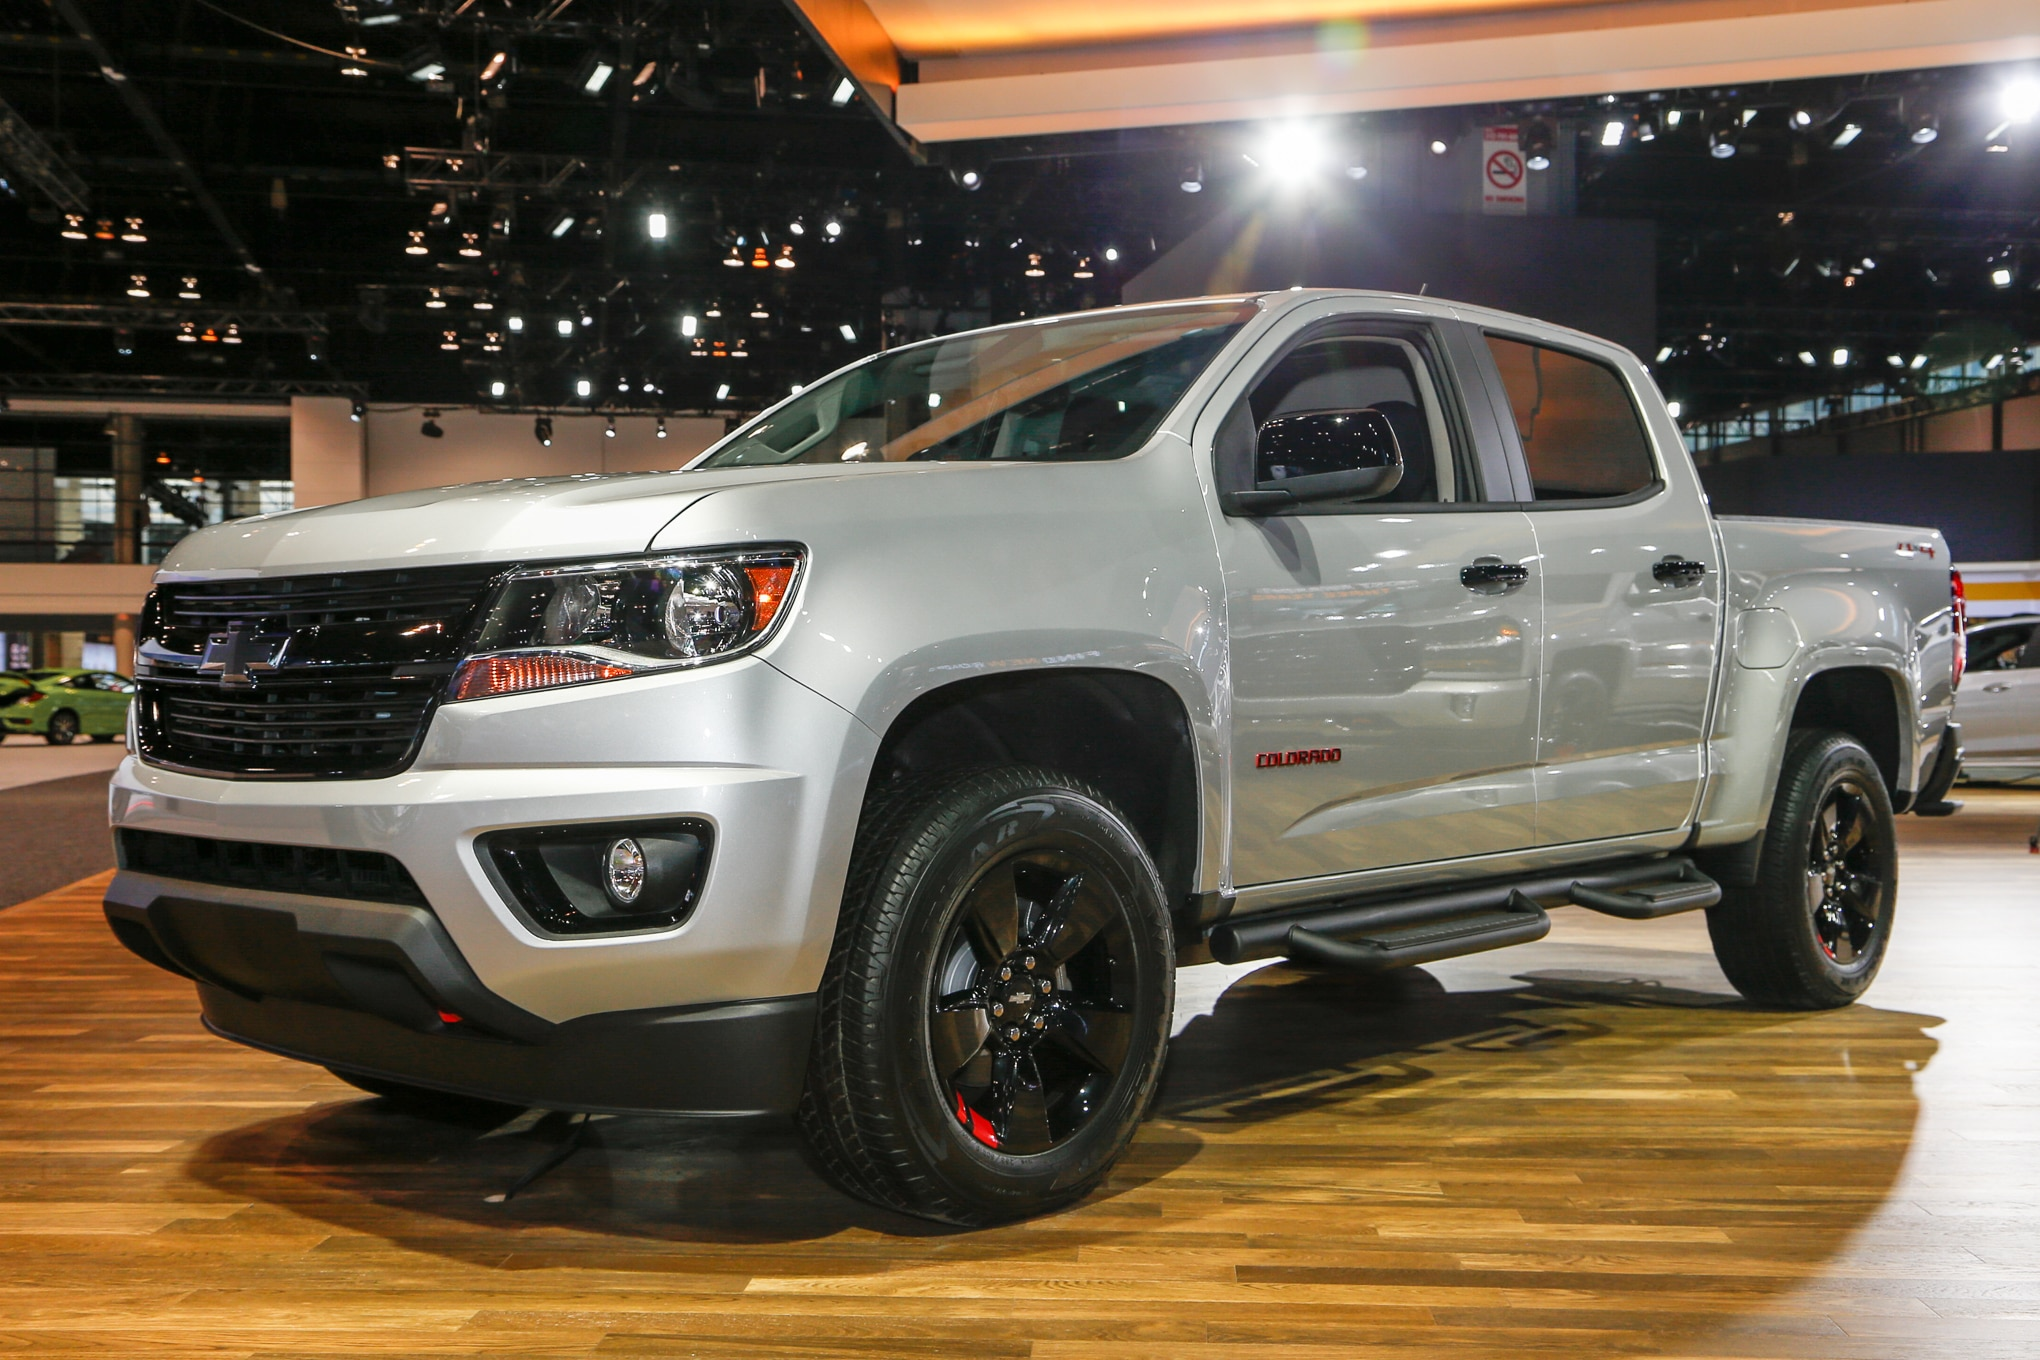 Chevy Colorado Ss 2017 >> Chevrolet Adds Redline Edition to 13 Vehicles | Automobile Magazine